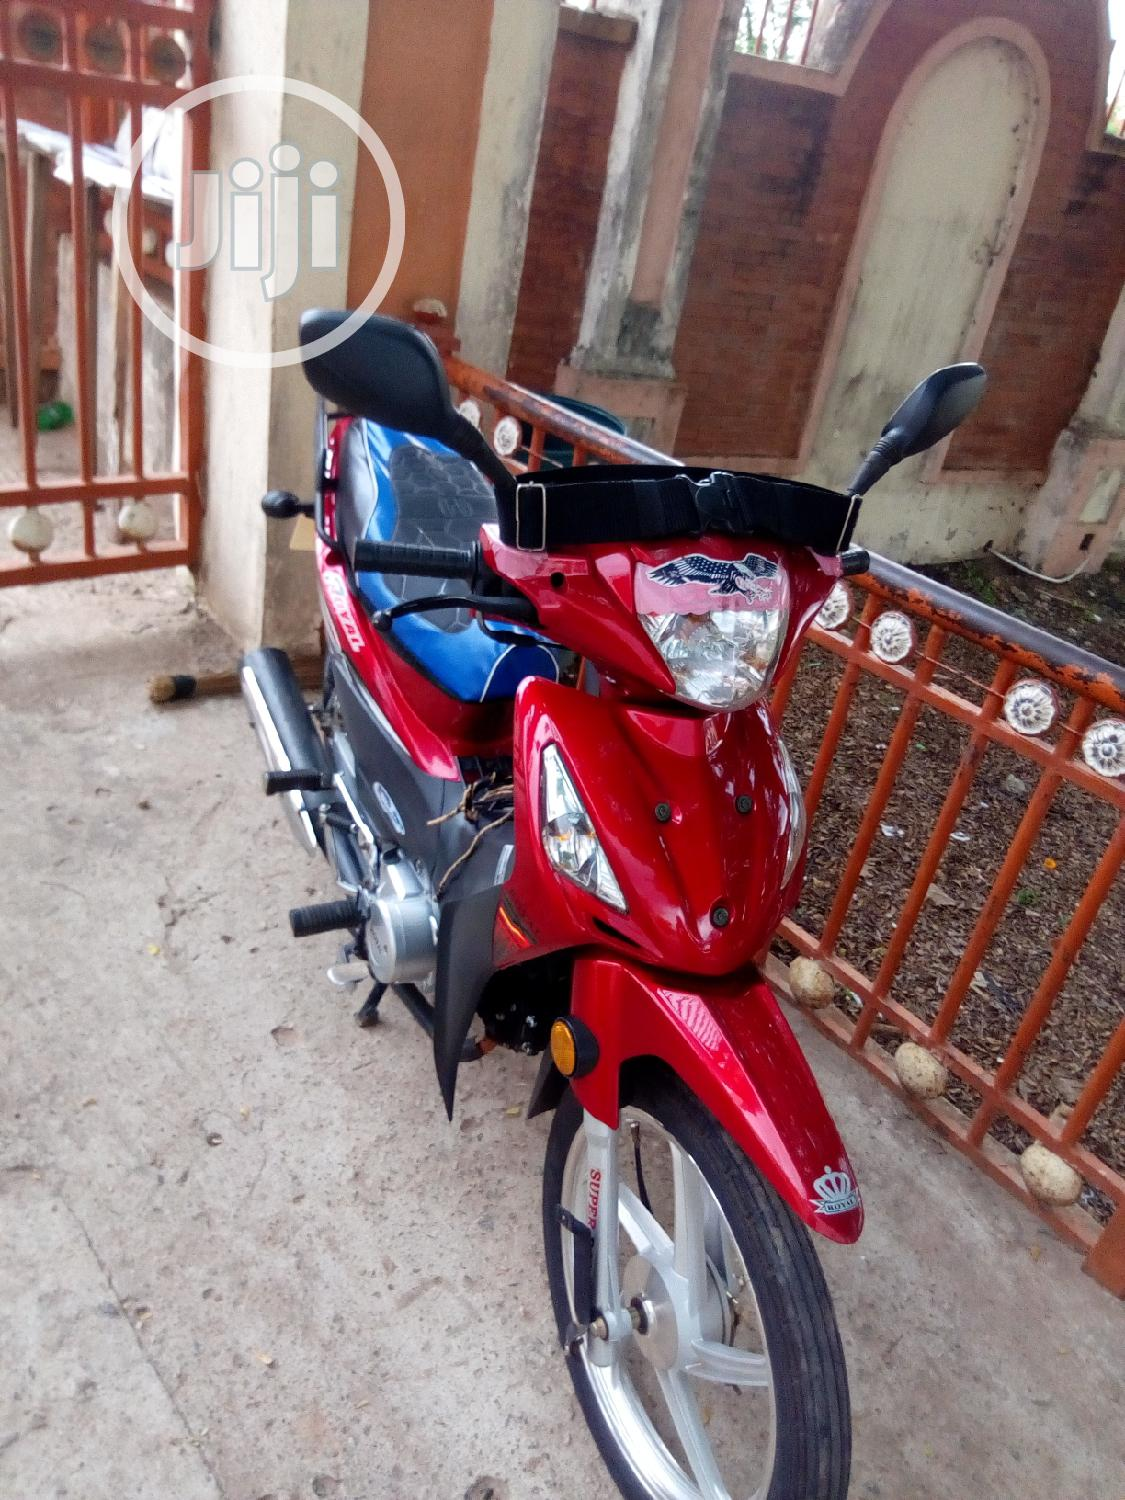 Custom Built Motorcycles Chopper 2020 Red | Motorcycles & Scooters for sale in Akure, Ondo State, Nigeria